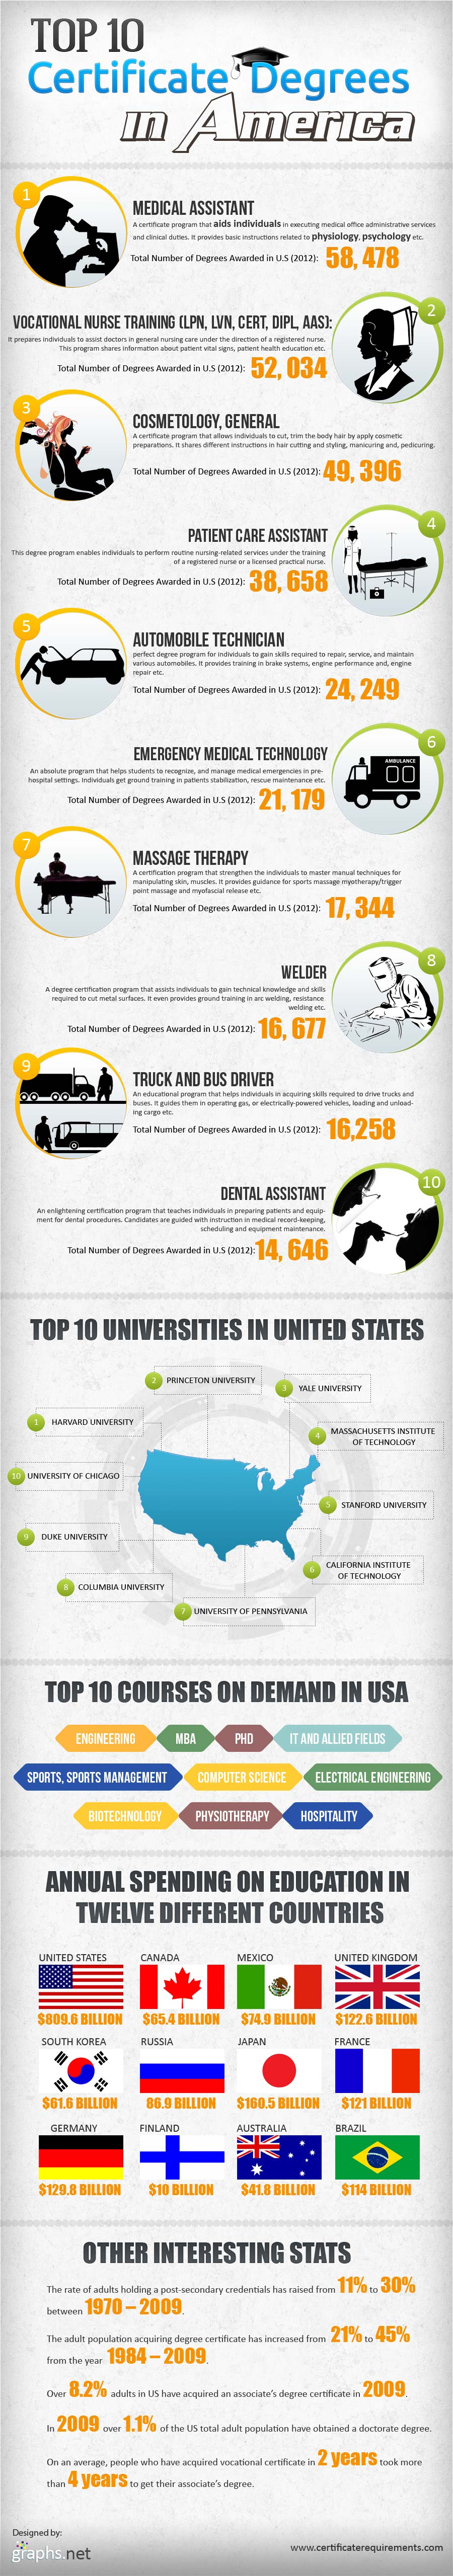 Top Ranking American Certificate Degrees-Infographic